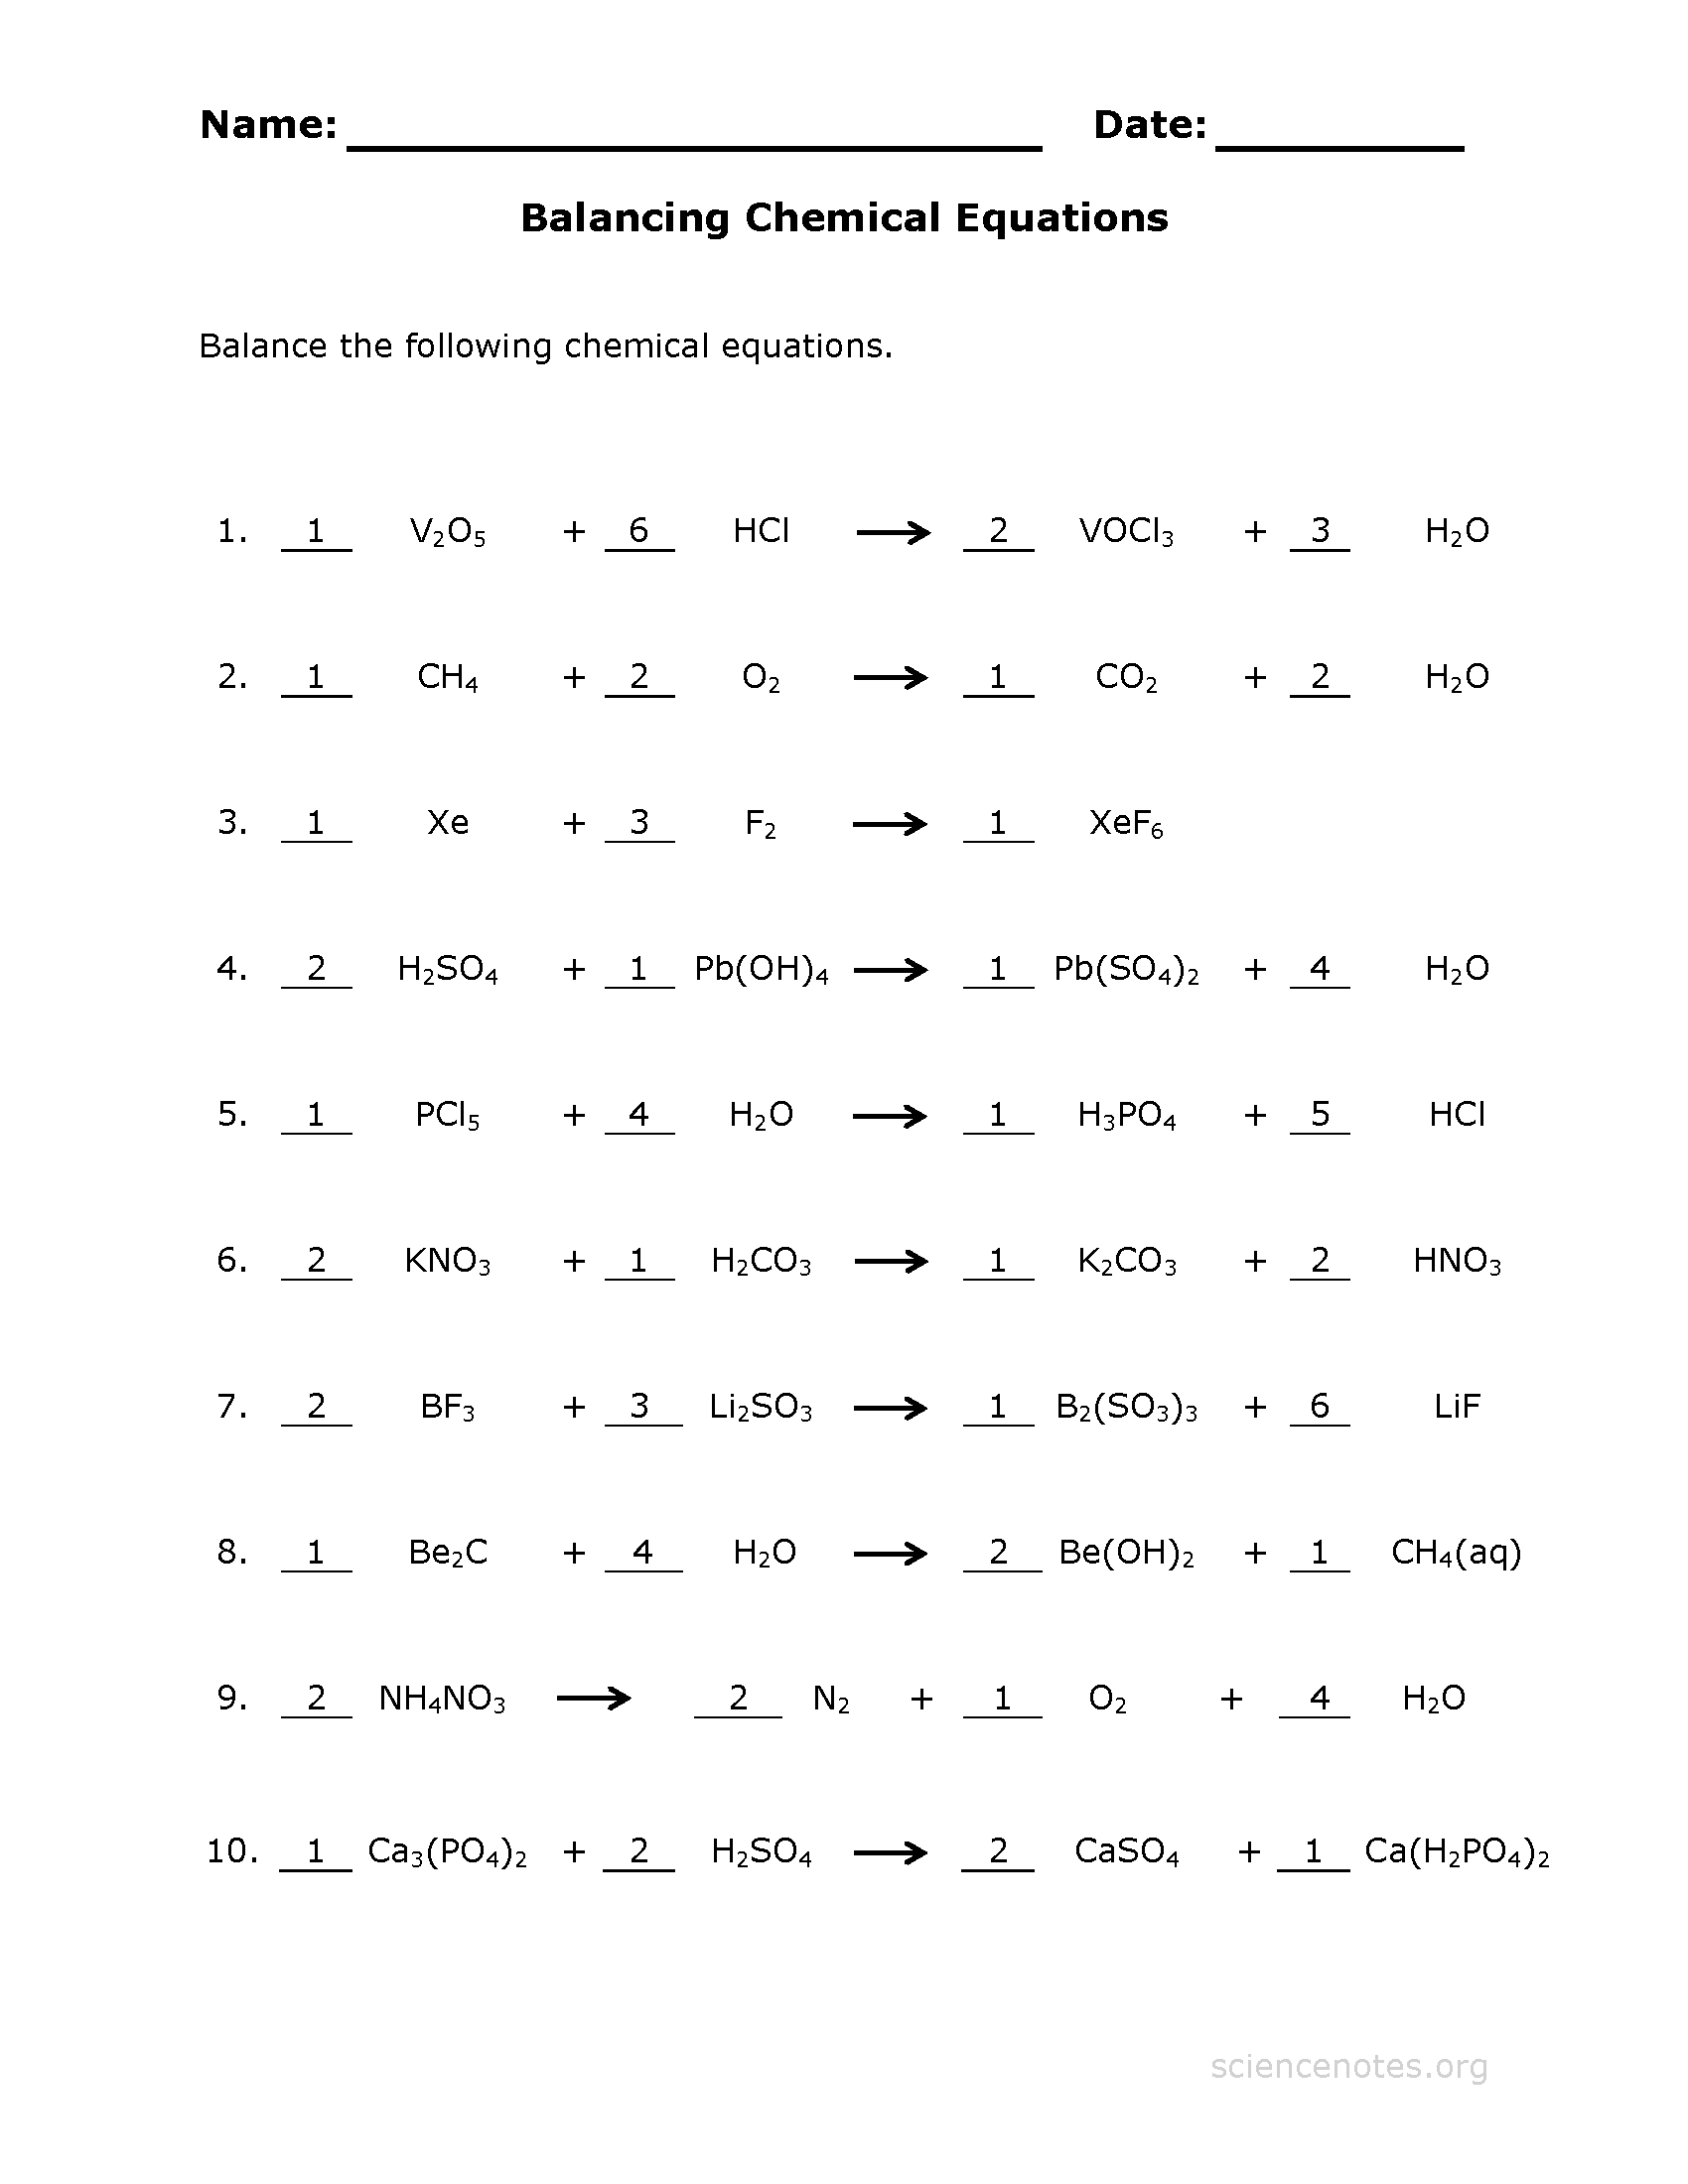 Balance Chemical Equations Worksheet 3 Answer Key Science Notes – Balancing Chemical Reactions Worksheet 2